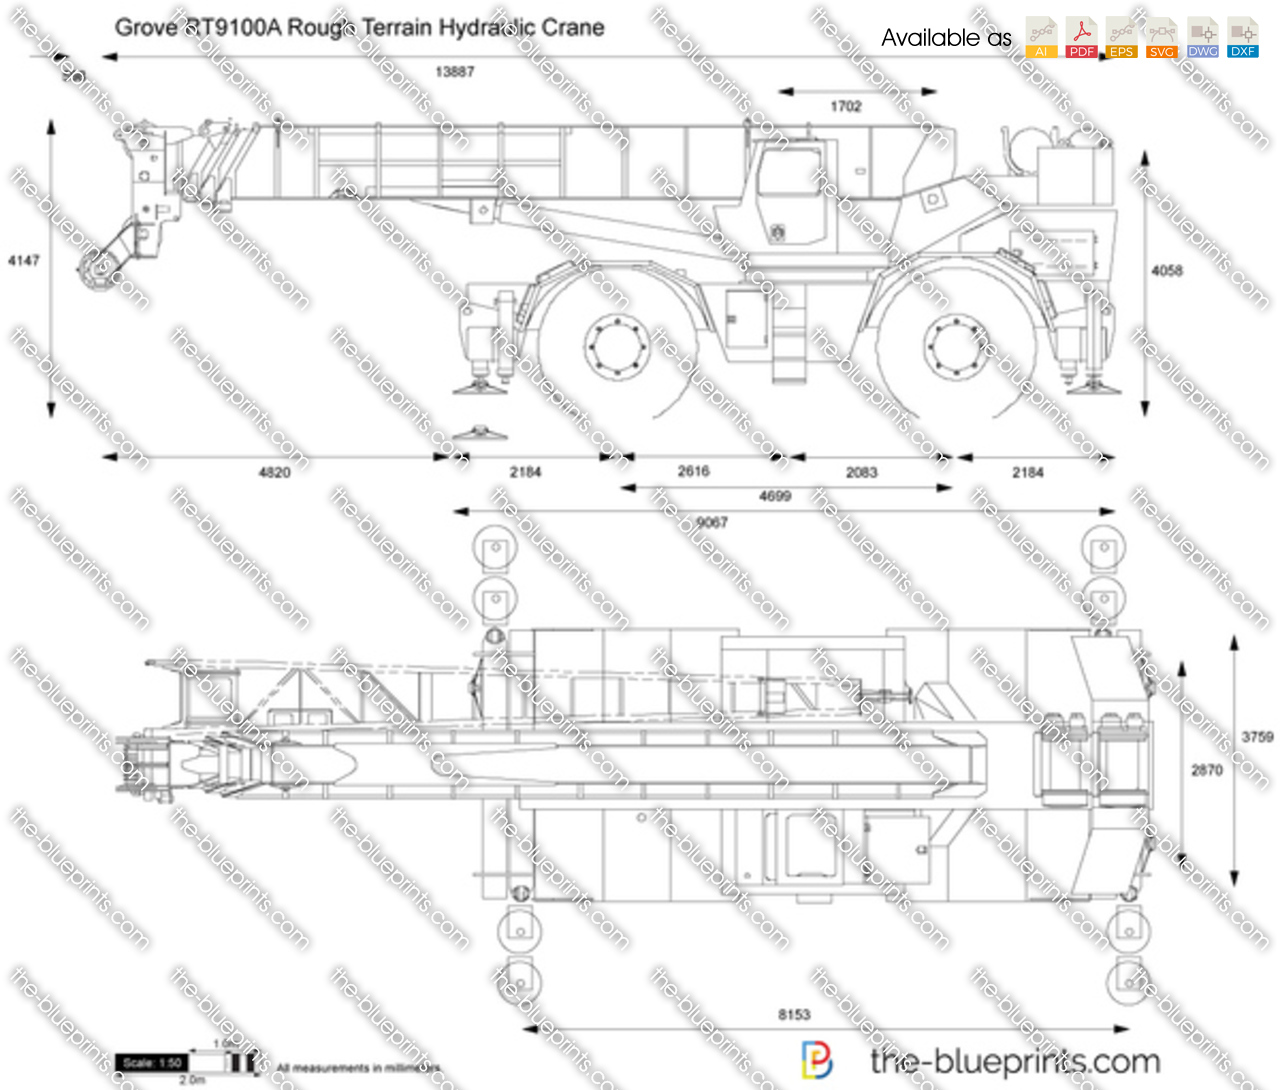 Grove RT9100A Rough Terrain Hydraulic Crane